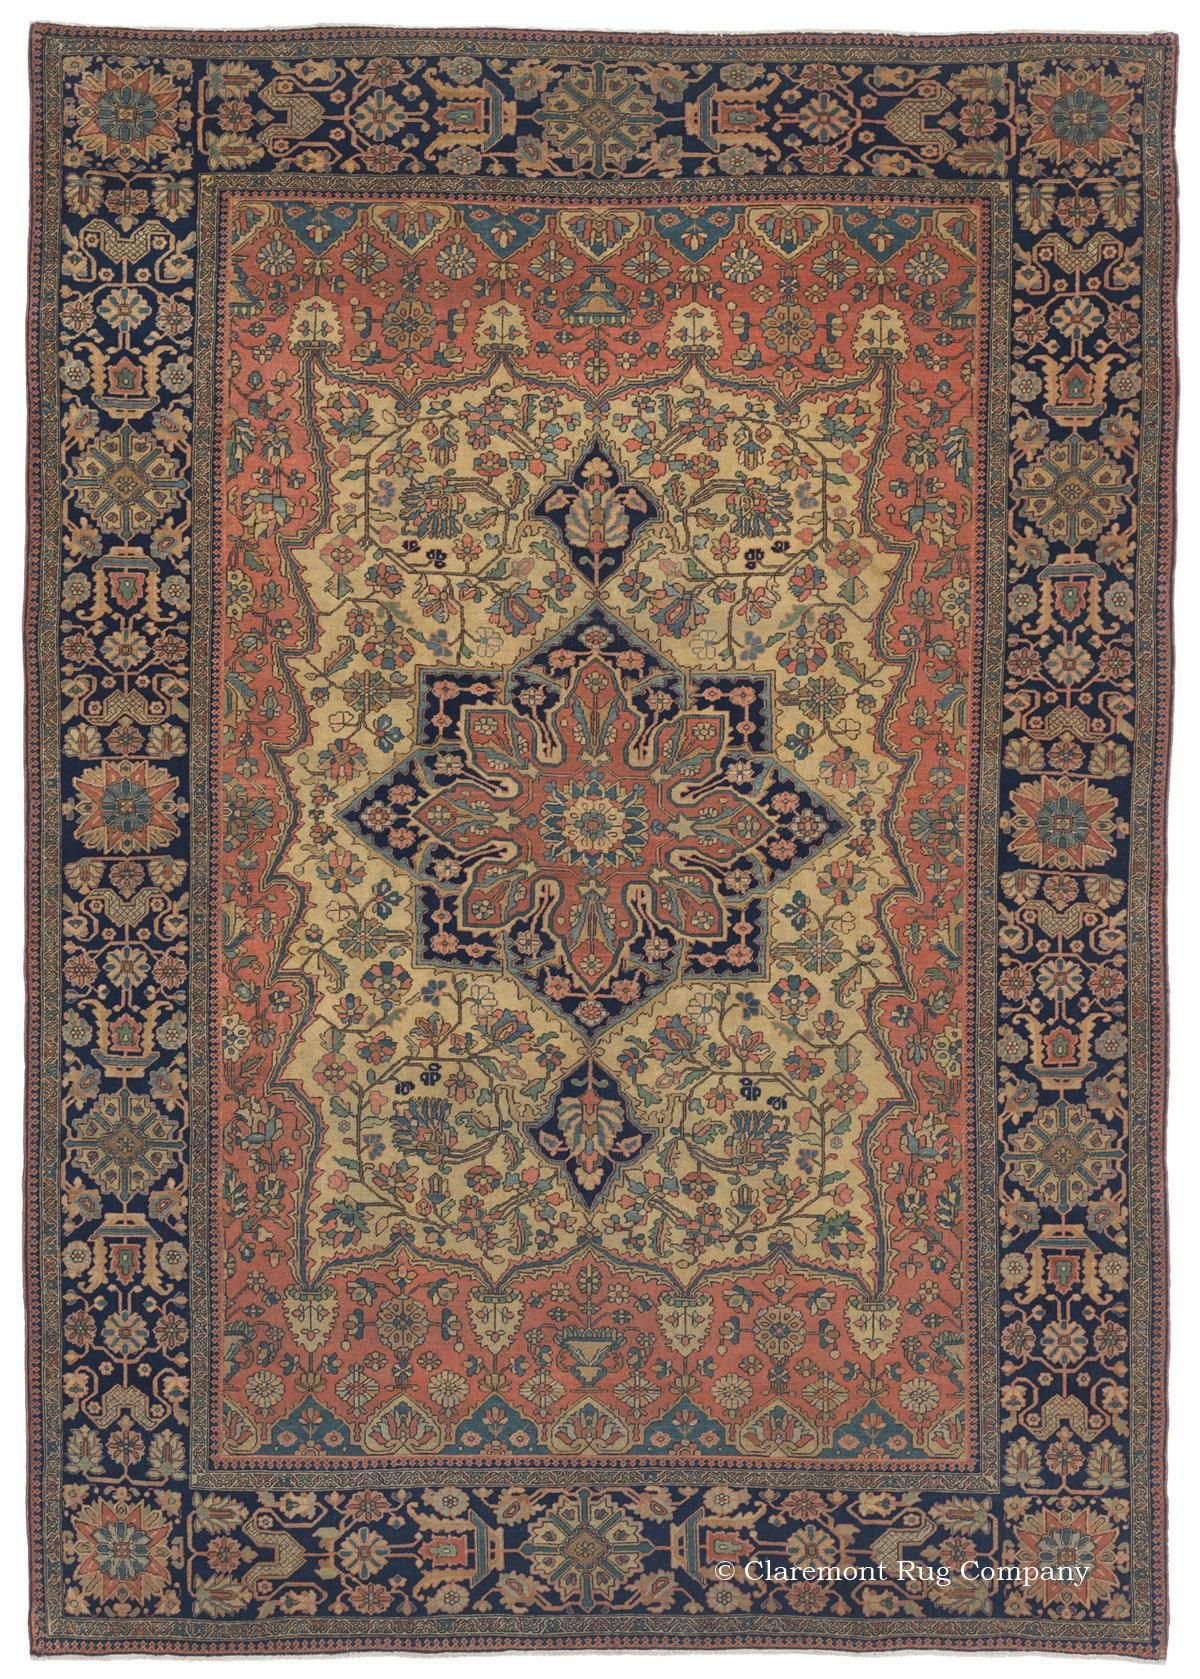 Tappeto Vintage Persiano Motasham Kashan Central Persian 4ft 8in X 6ft 8in Circa